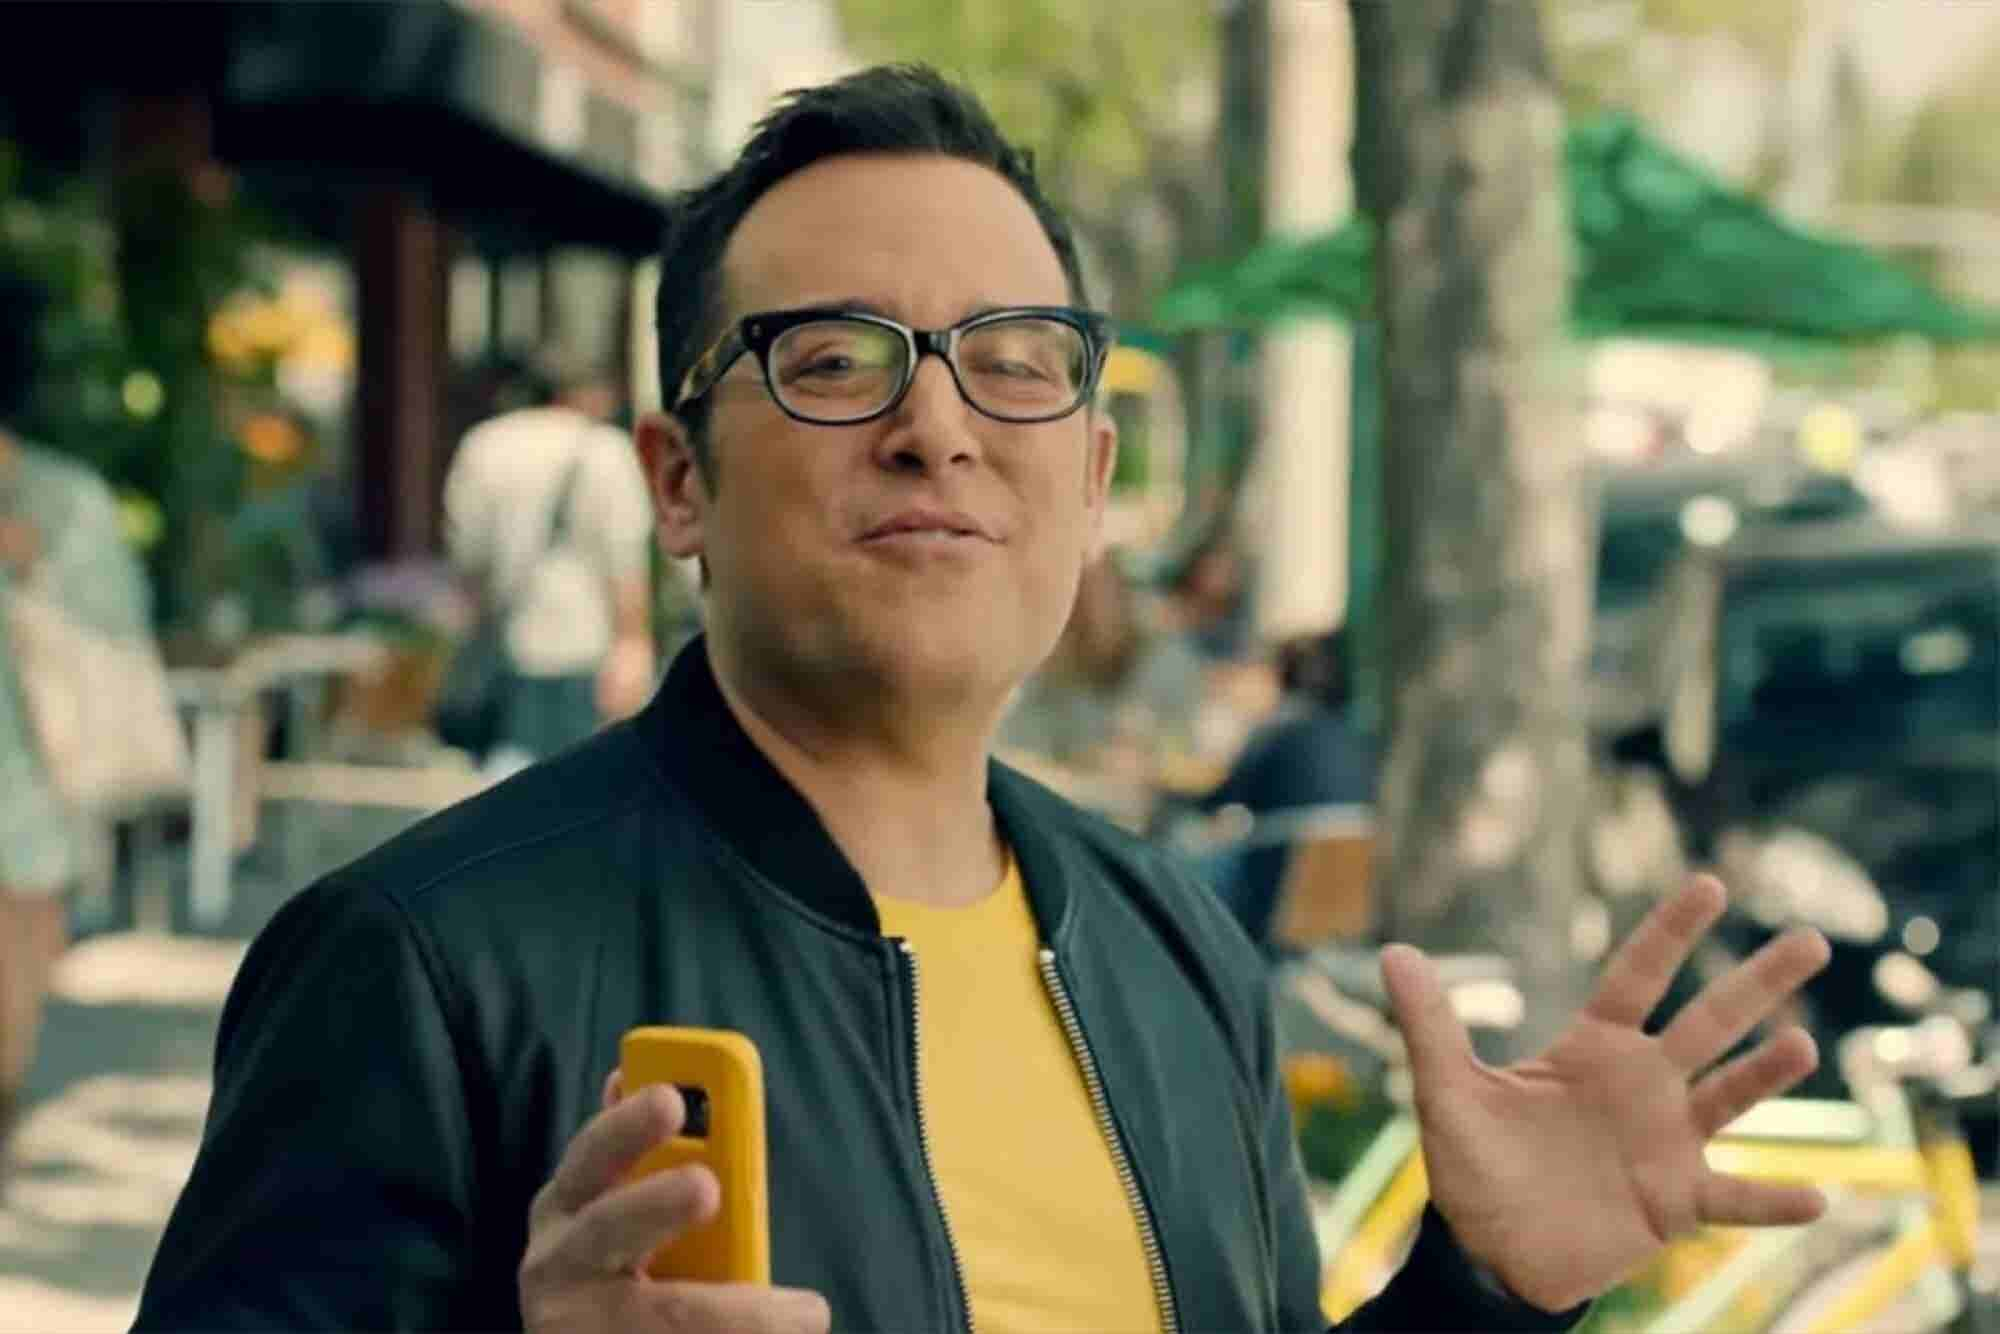 Sprint Steals 'Verizon Guy' for Latest Ad Campaign